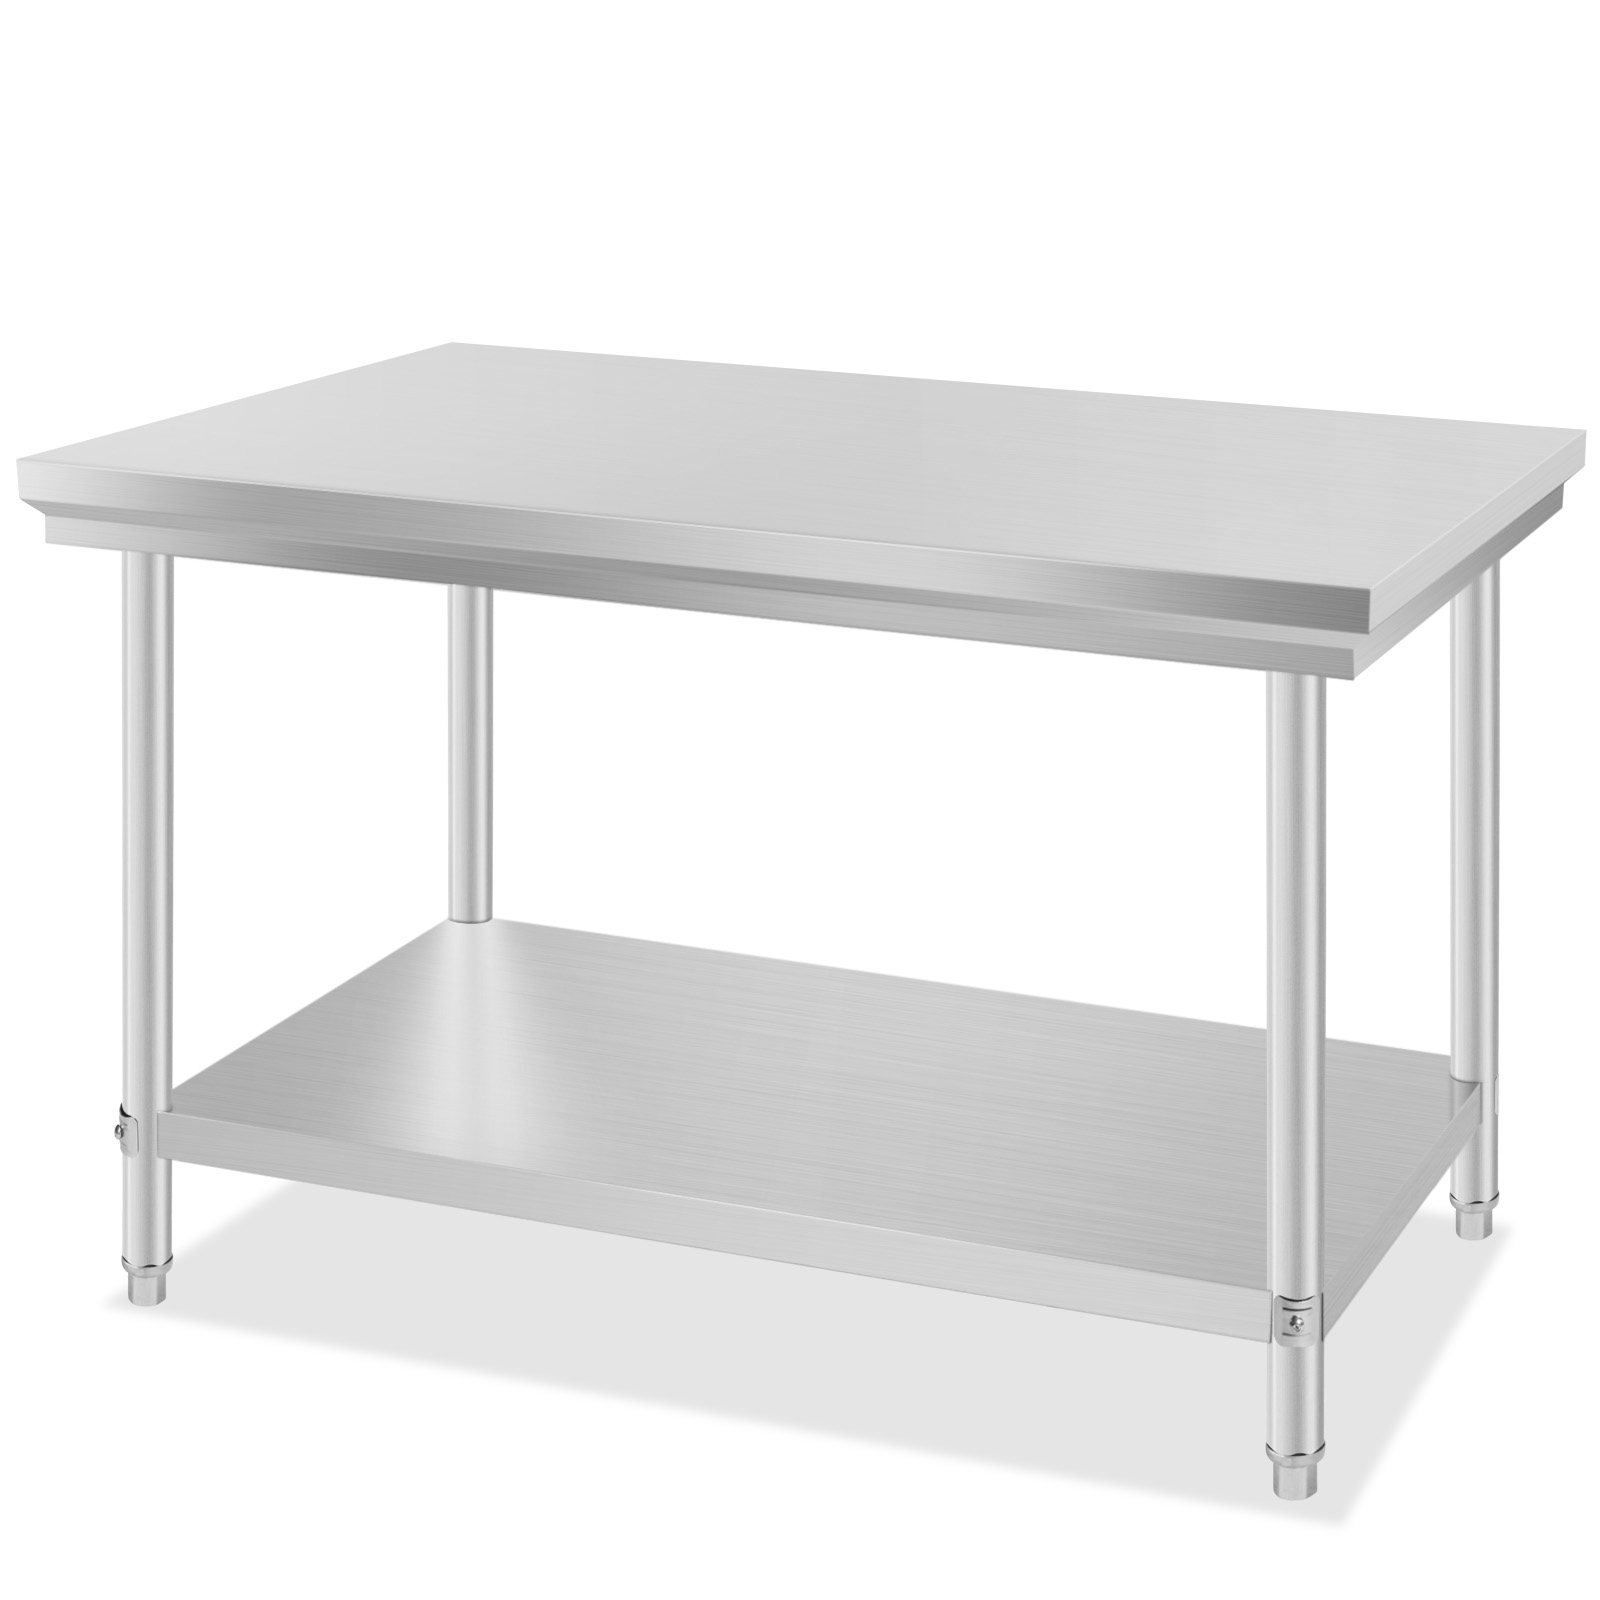 Industrial Kitchen Prep Table: 2X4FT KITCHEN WORK PREP TABLE COMMERCIAL CATERING FOOD